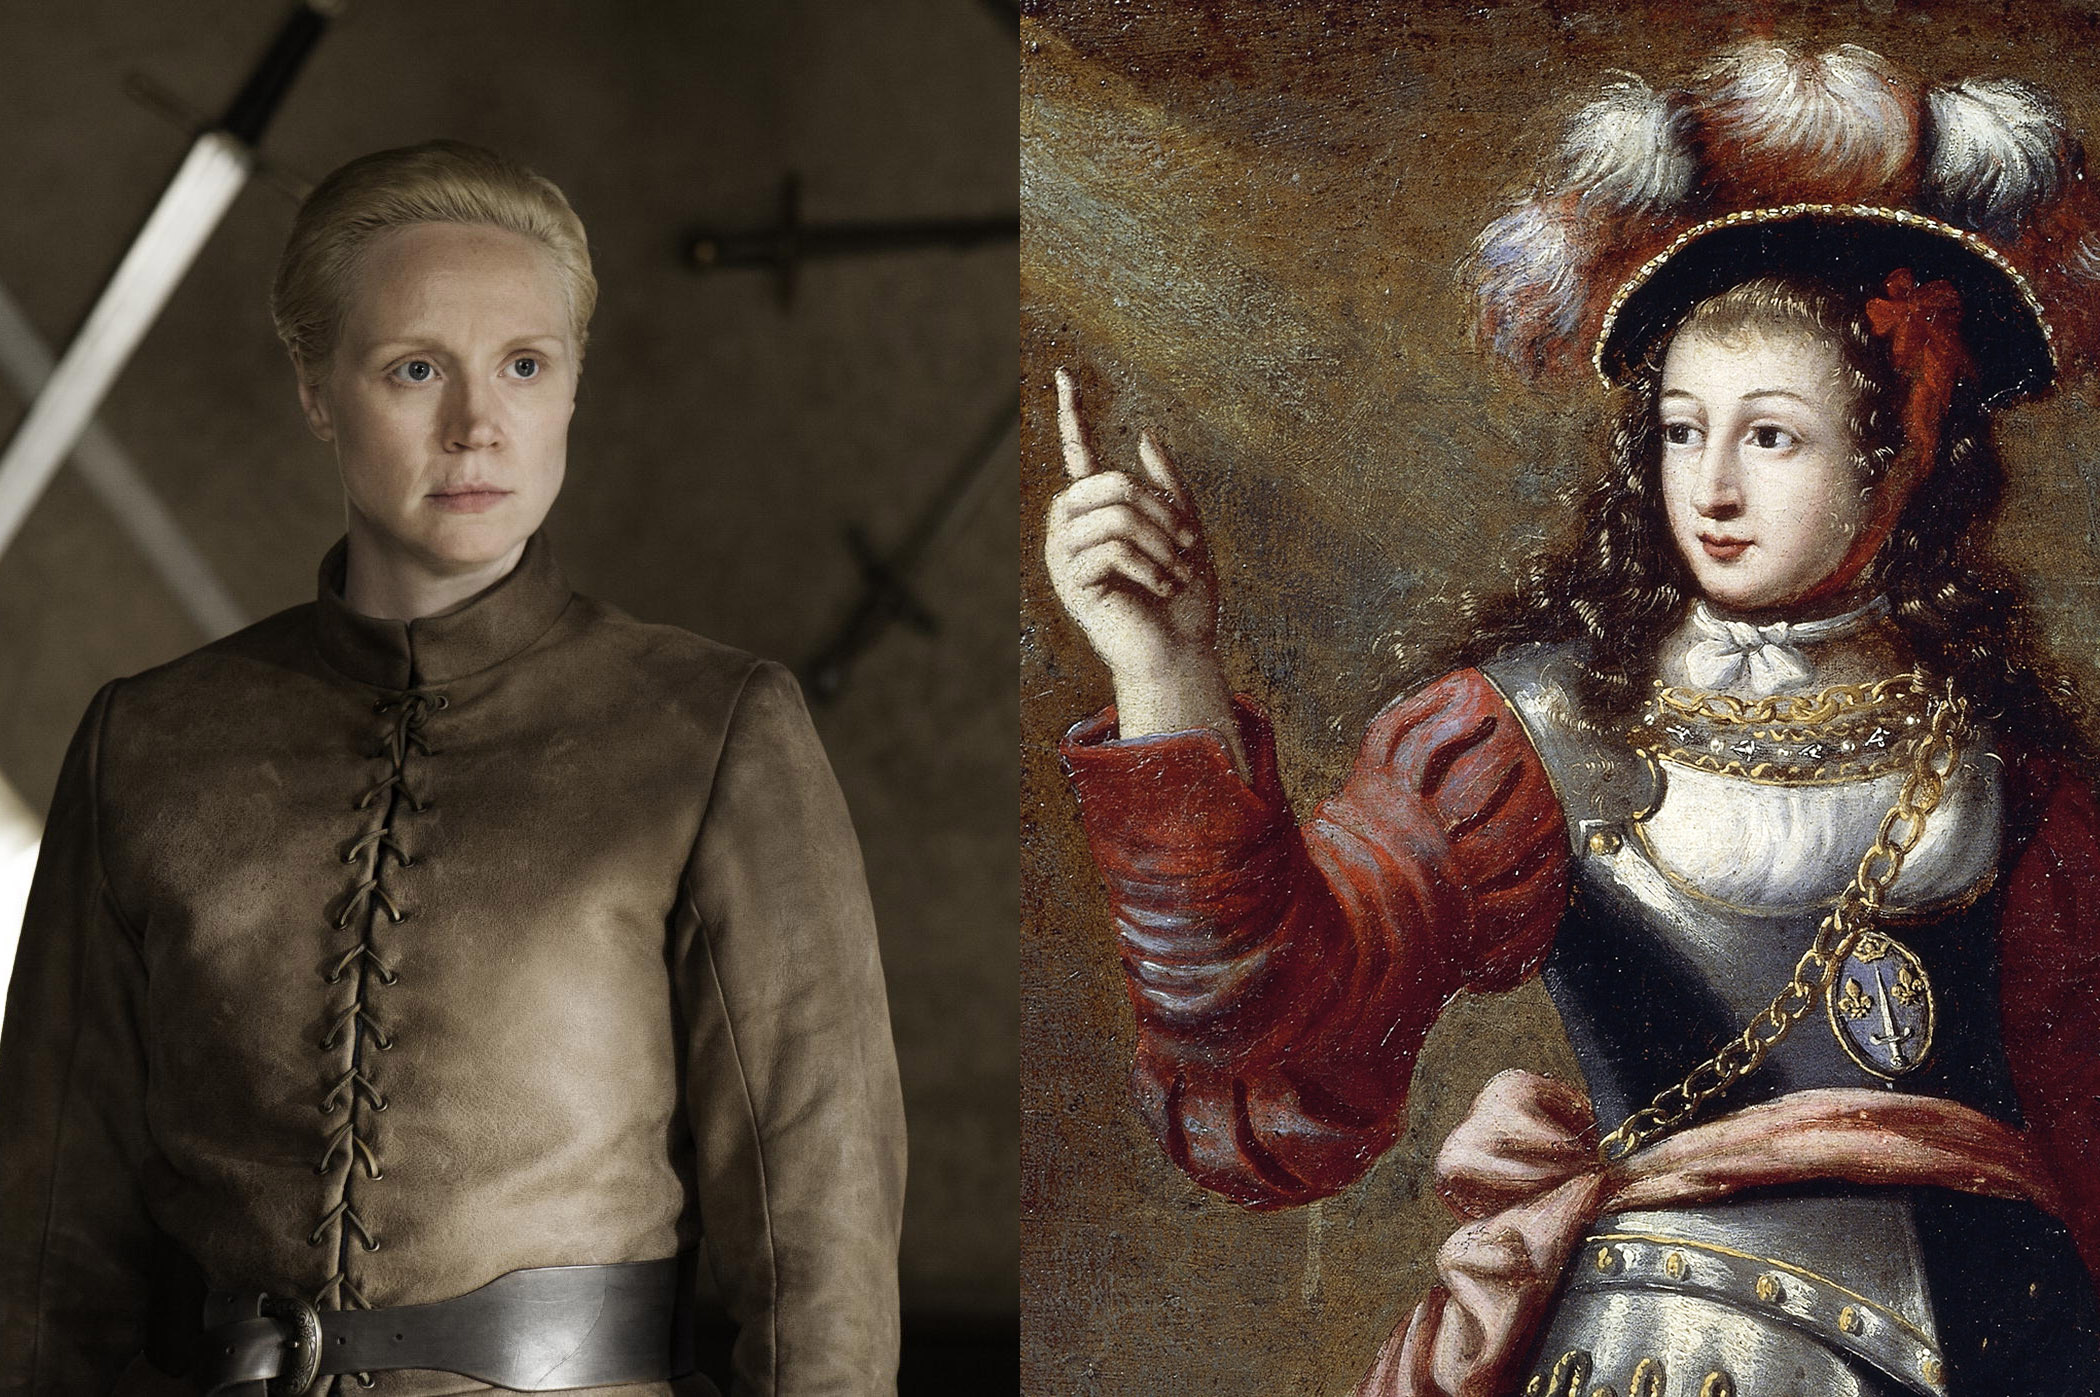 From left: Brienne of Tarth and Joan of Arc.